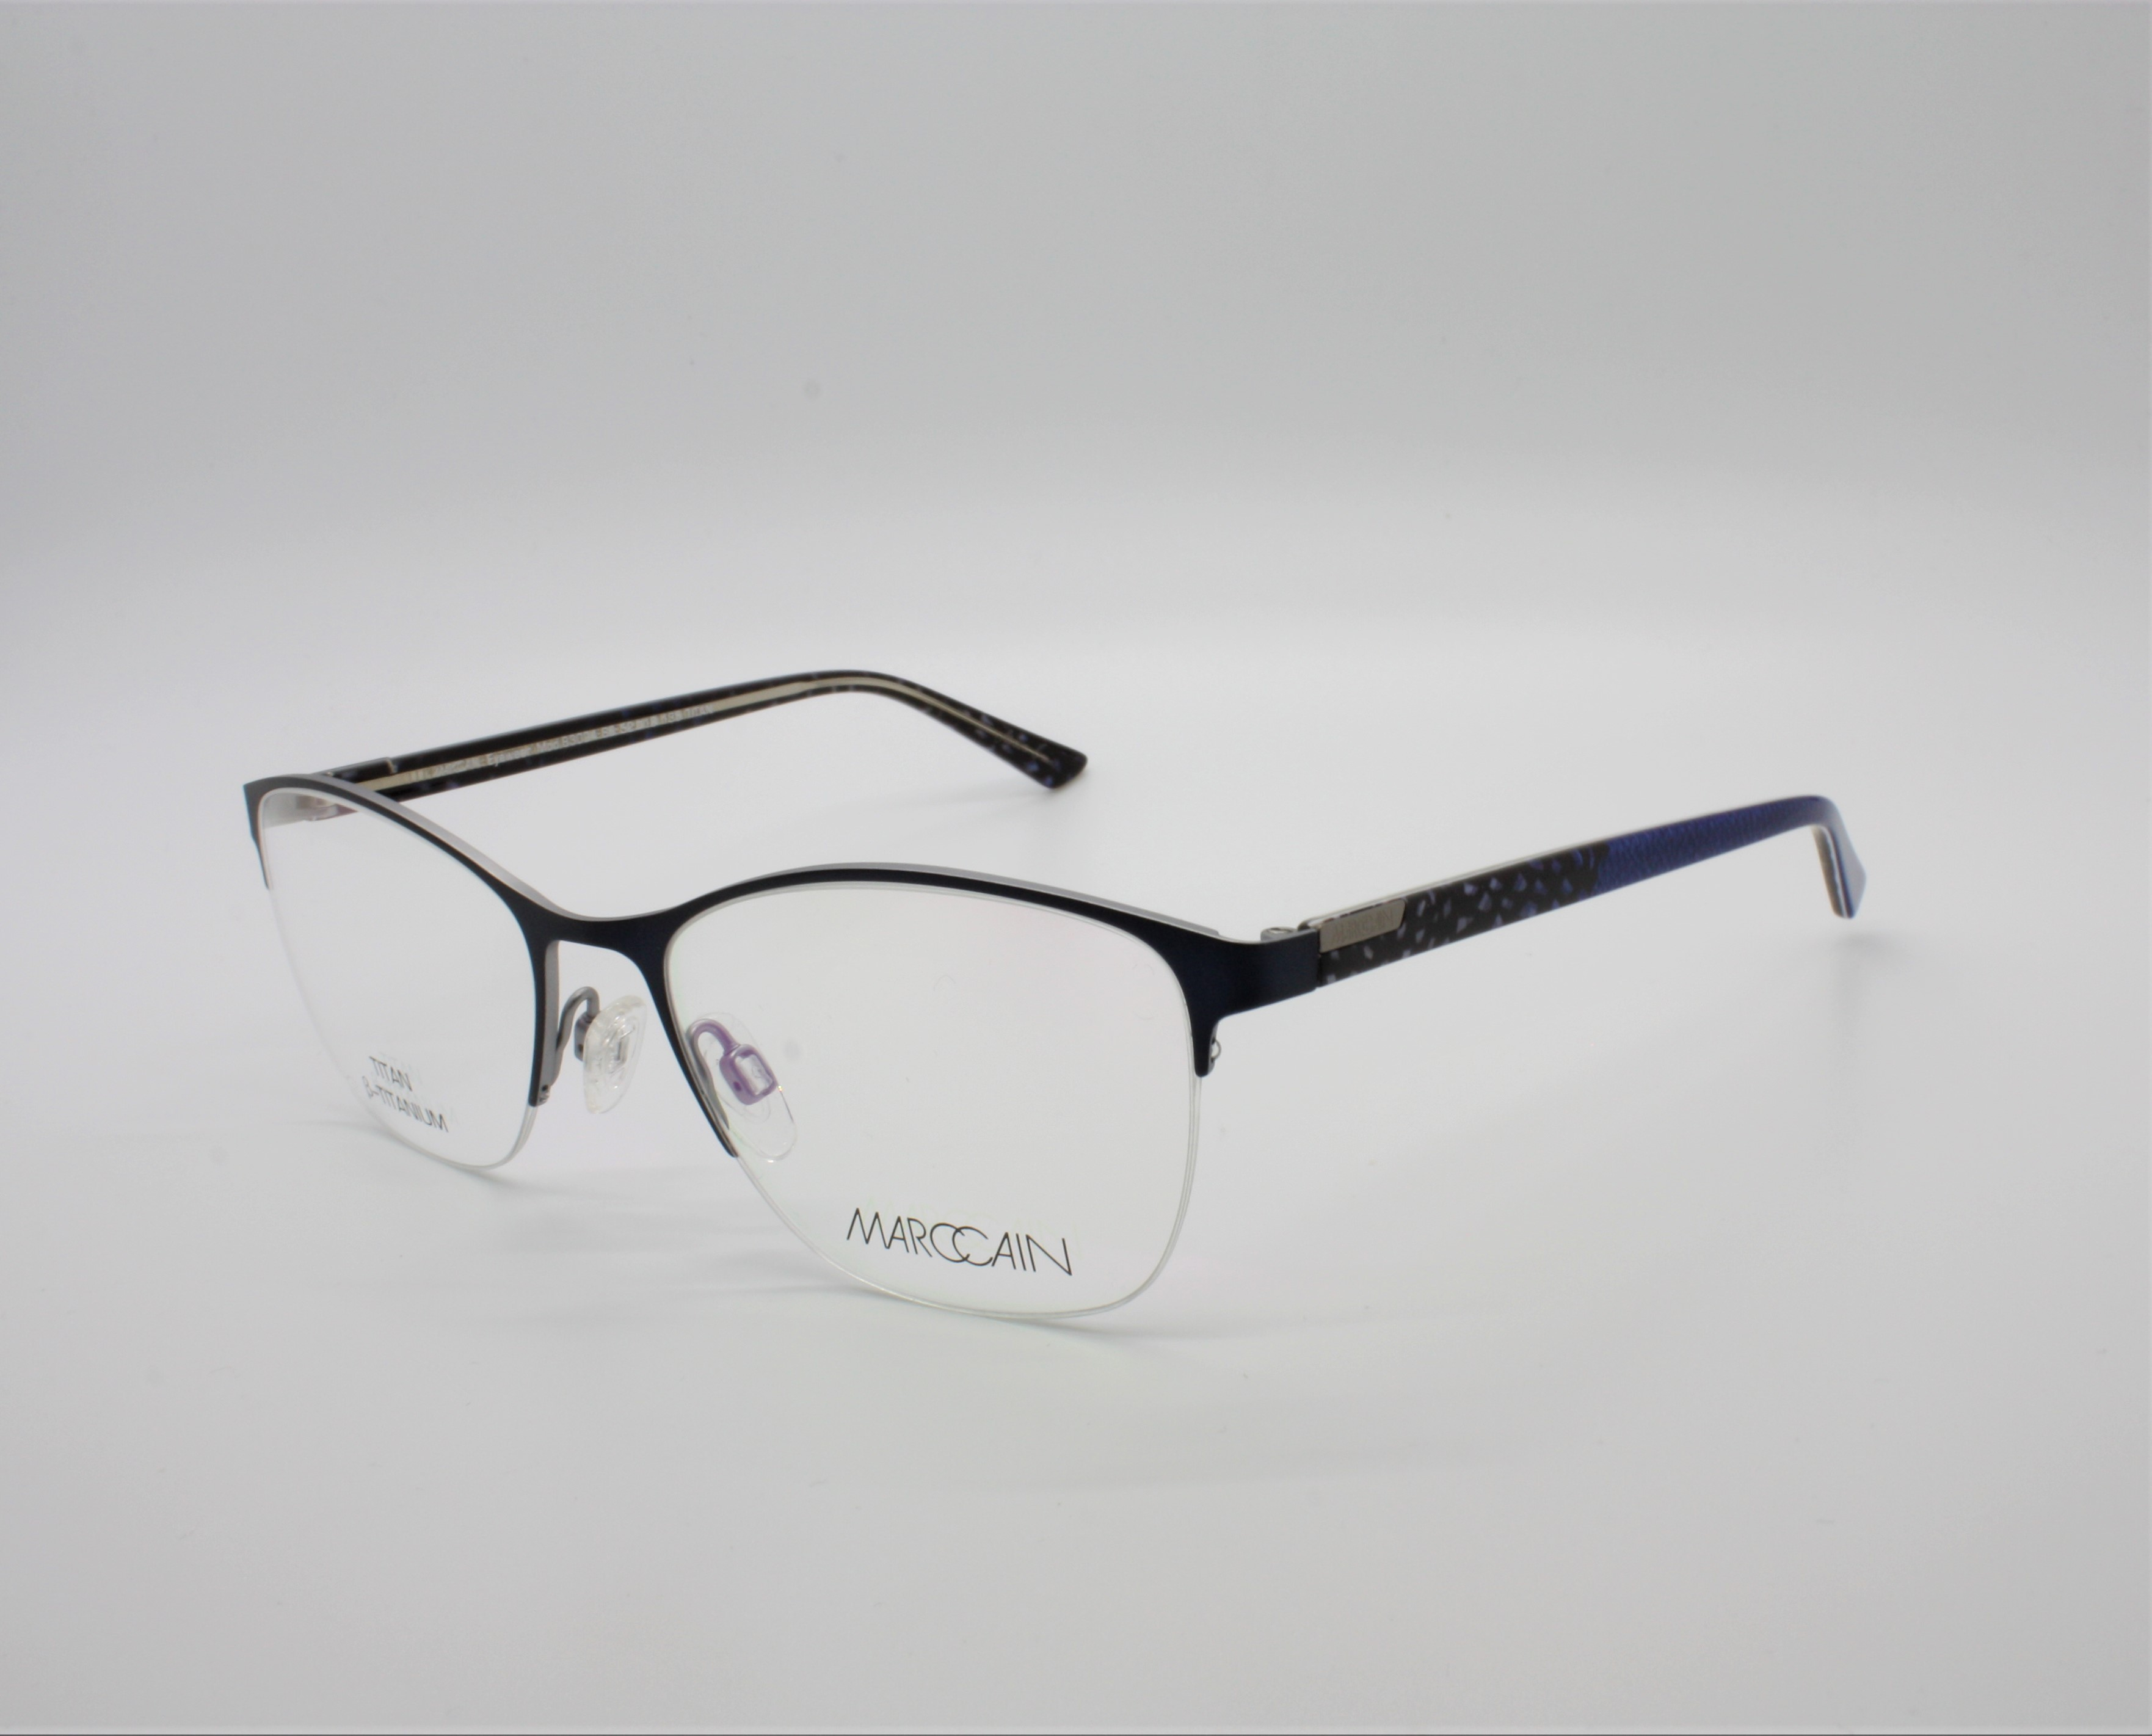 Marc Cain 83094 - Navy (BS)